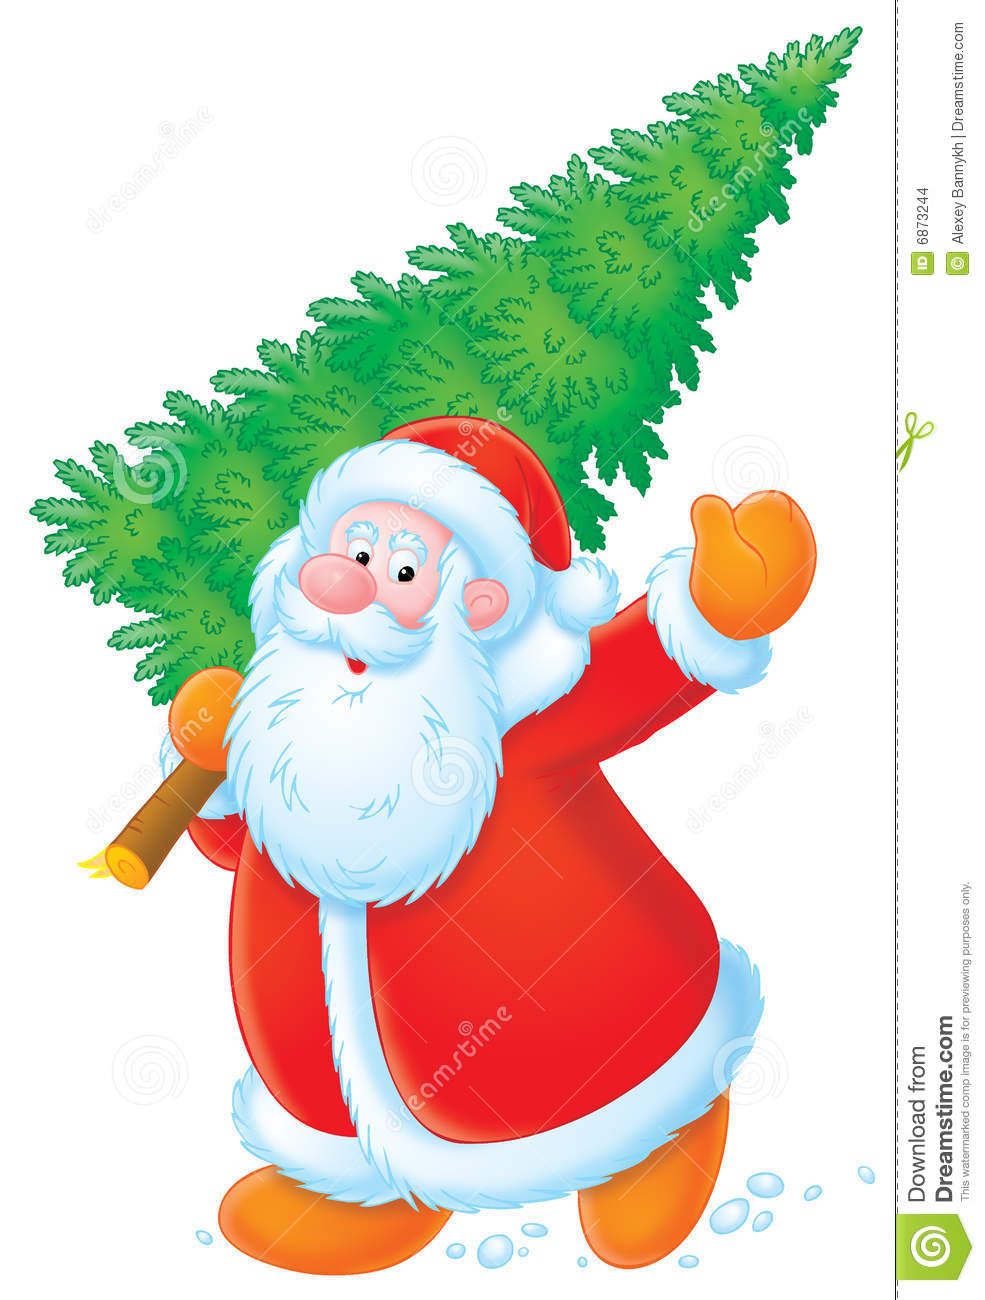 Santa Claus With Christmas Tree Stock Illustration.